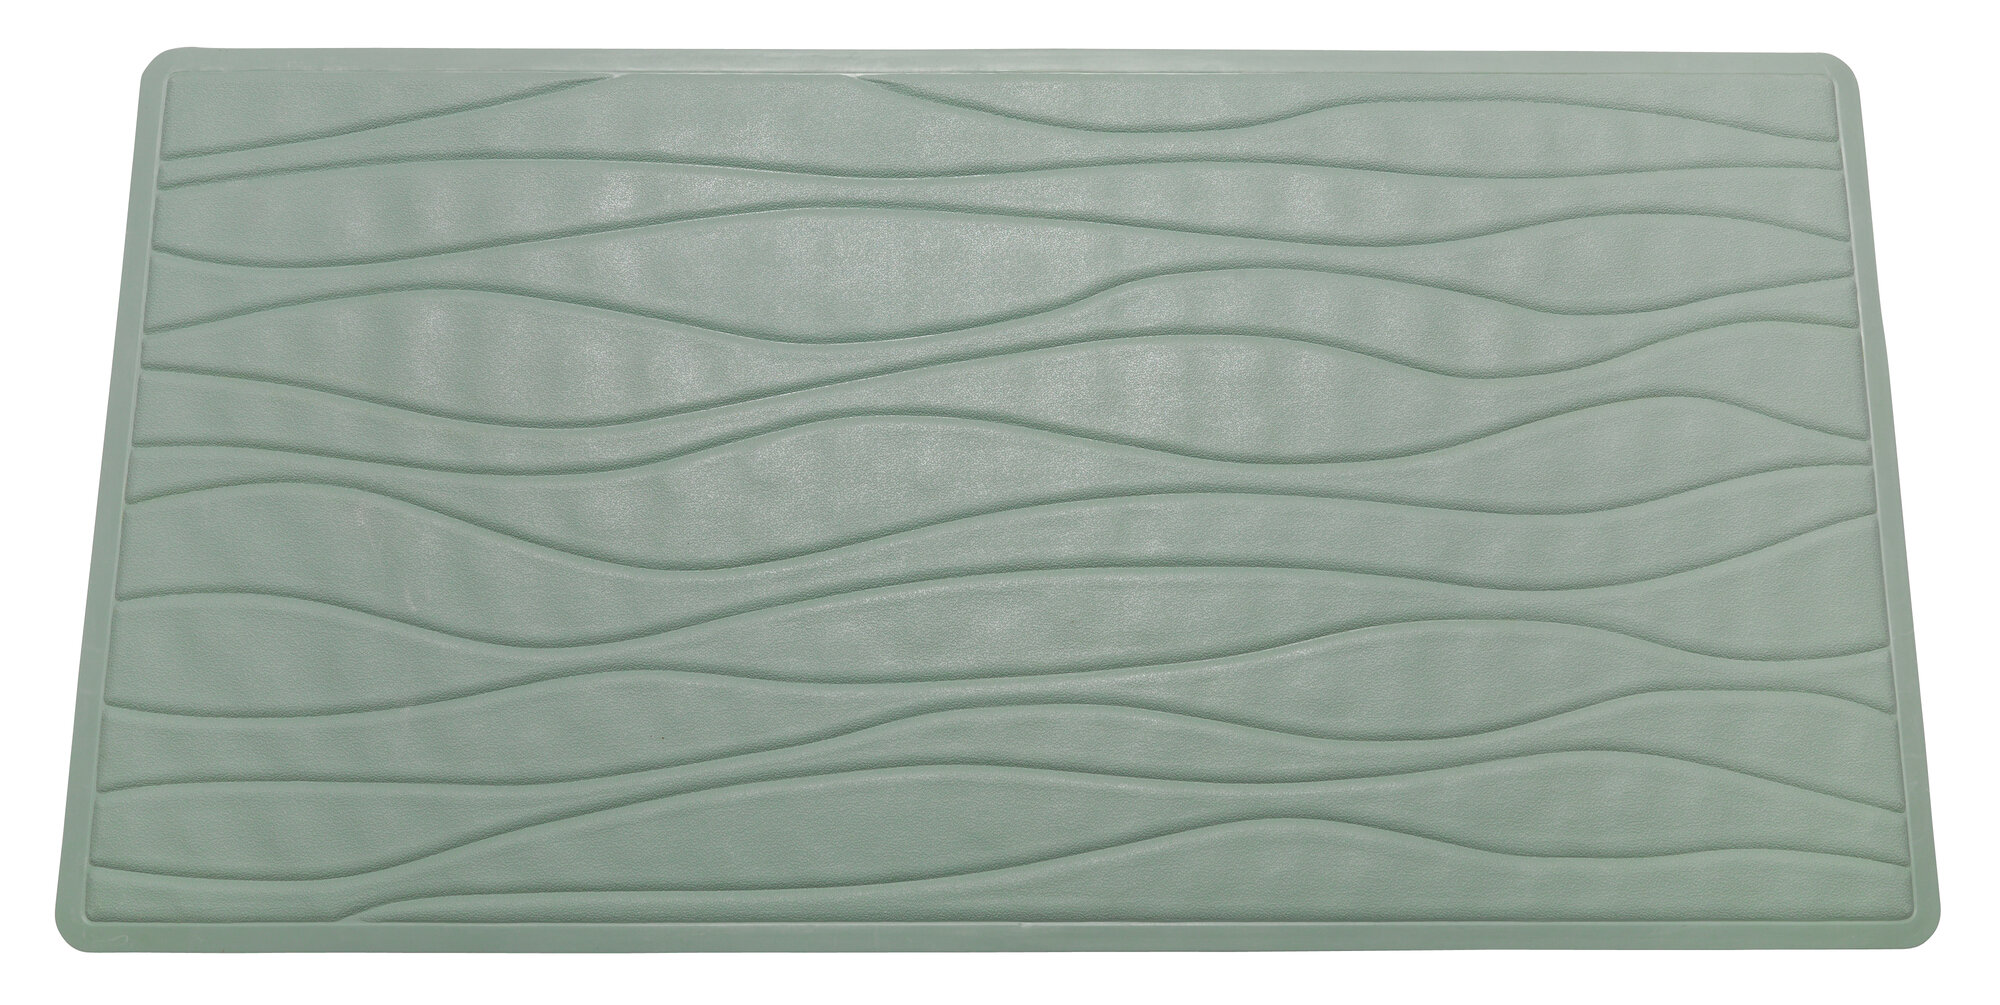 Ben And Jonah Medium Rubber Bathtub Mat